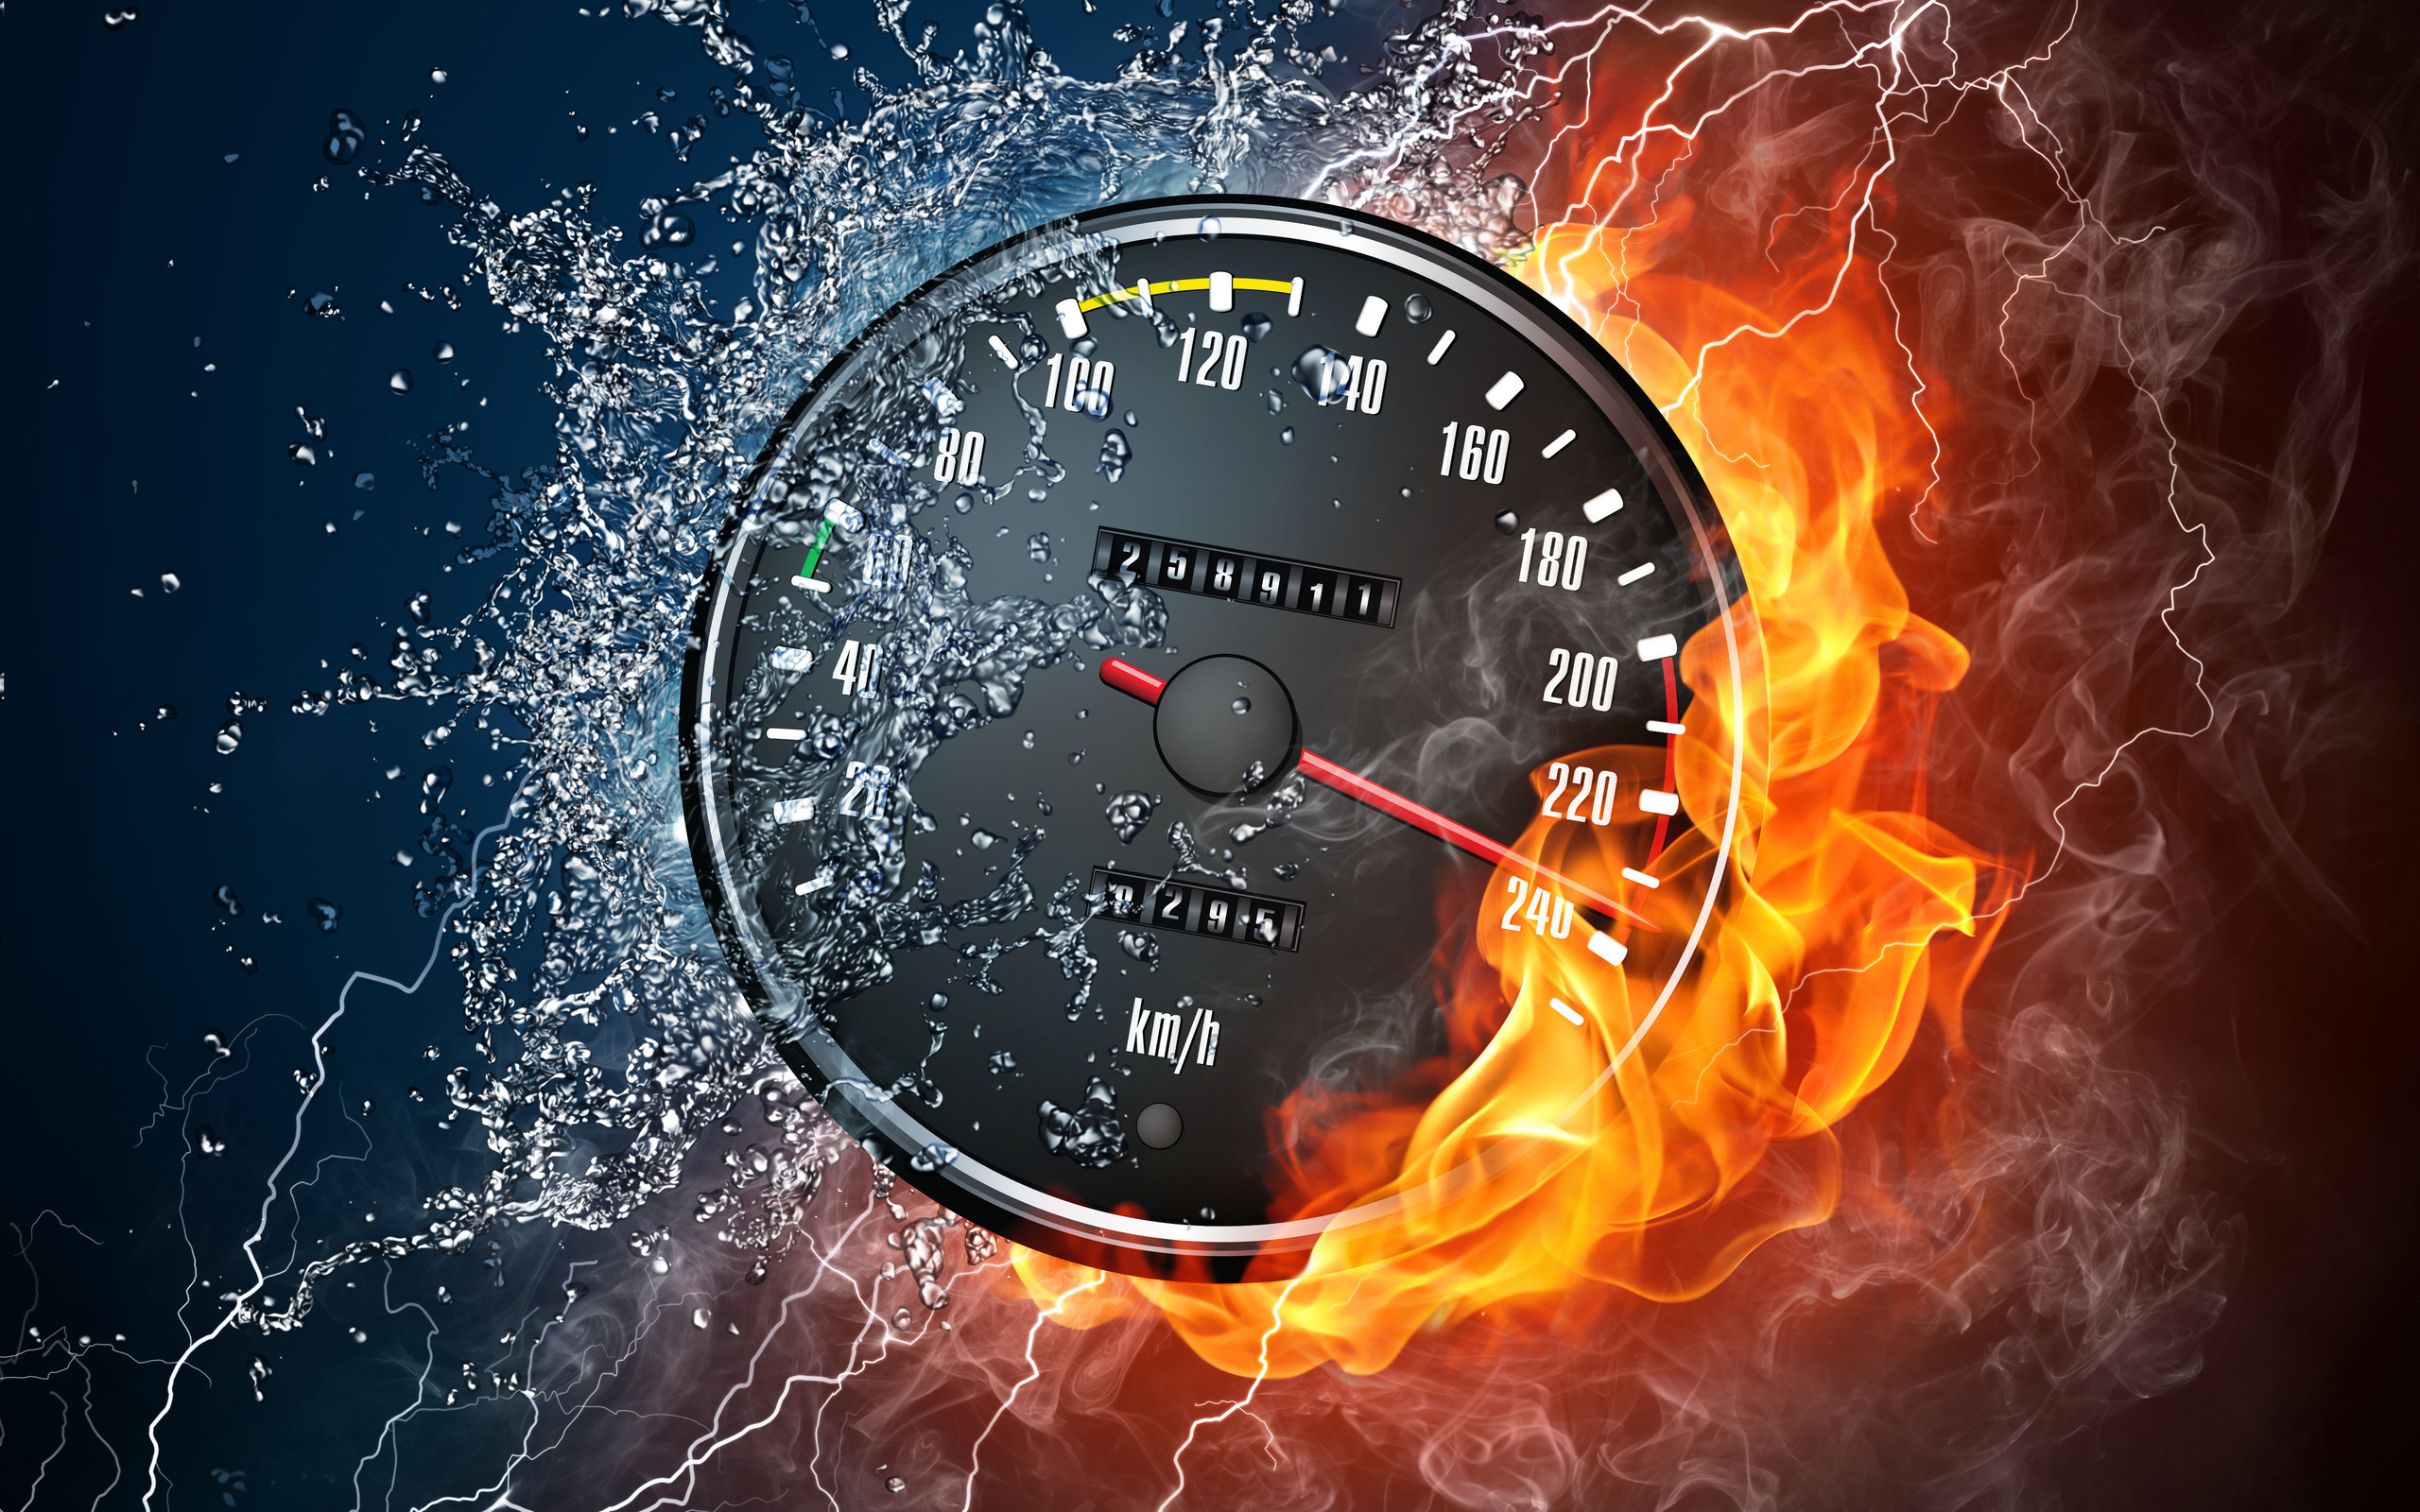 How to know your internet speed | Cyber0pedia